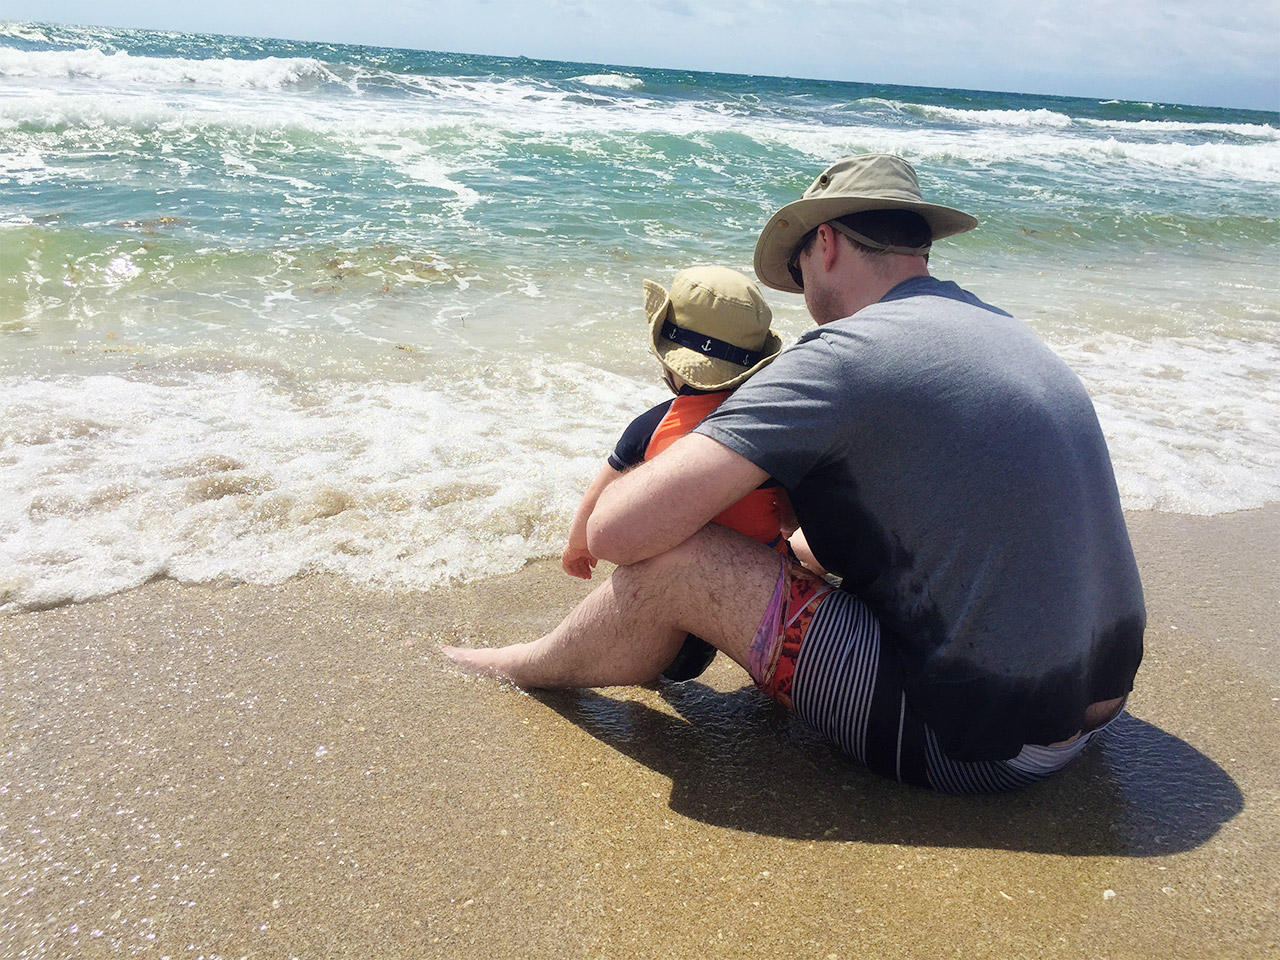 Boo experiencing the waves with Daddy